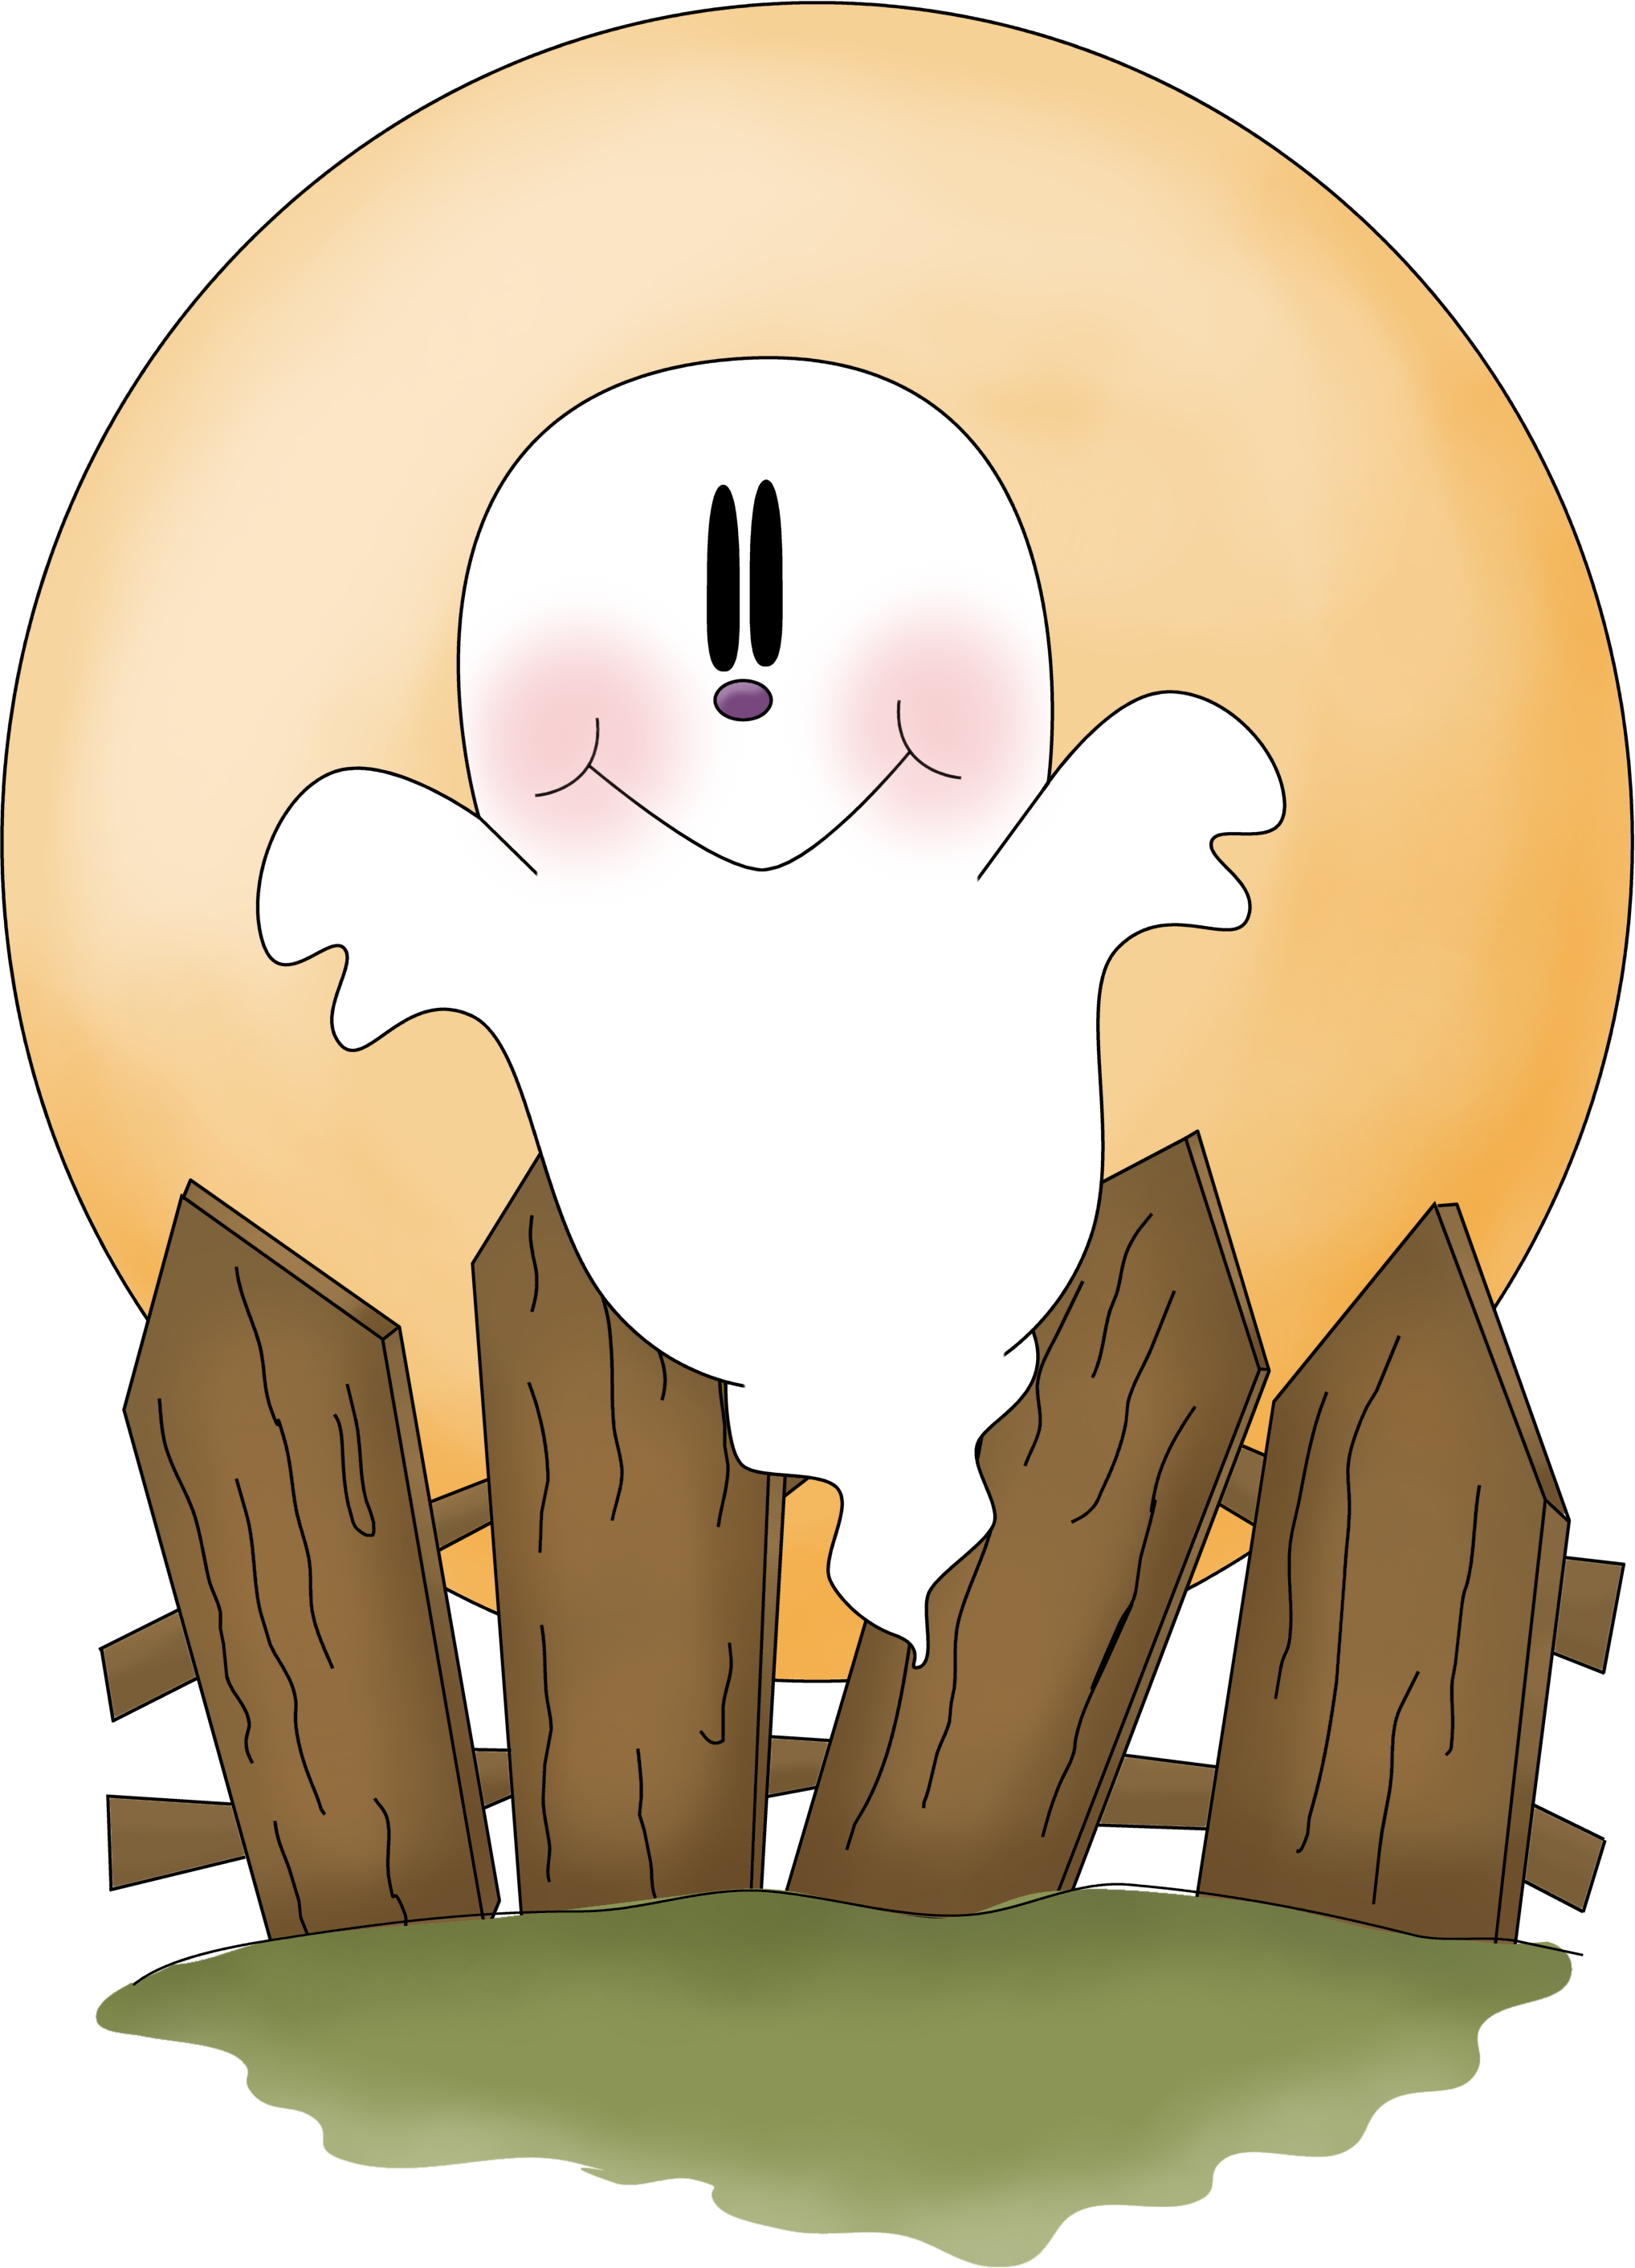 Ghost Clipart Halloween Decoration - Dibujos Y Manualidades De Hallowen Kitty Cat Clip Art (2036x2824), Png Download